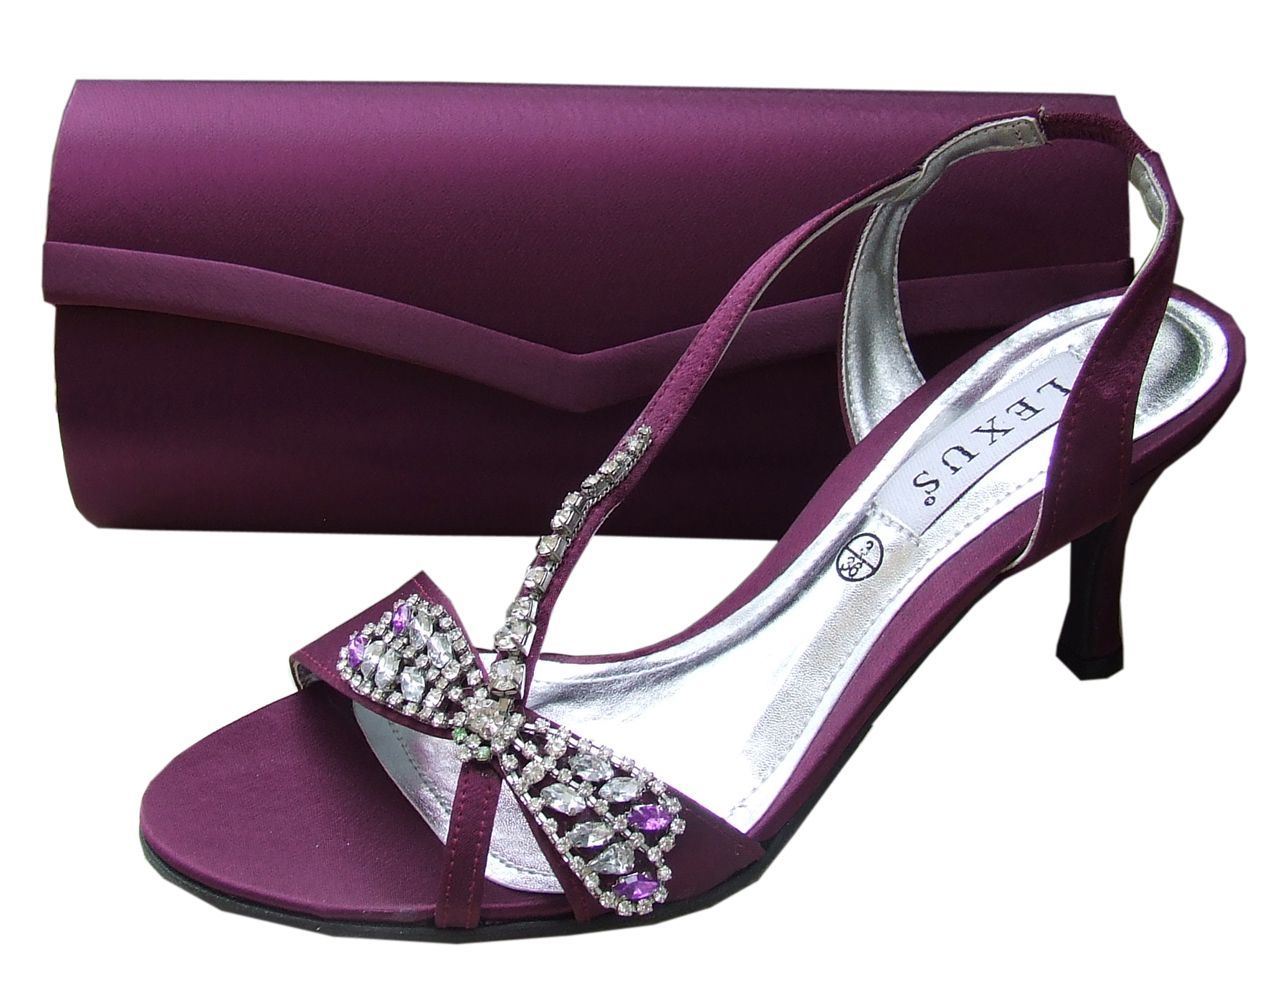 Elegant Purple Evening Sandals And Matching Bag By The Designer Lexus Affordable Shoes Online From Sole Divas